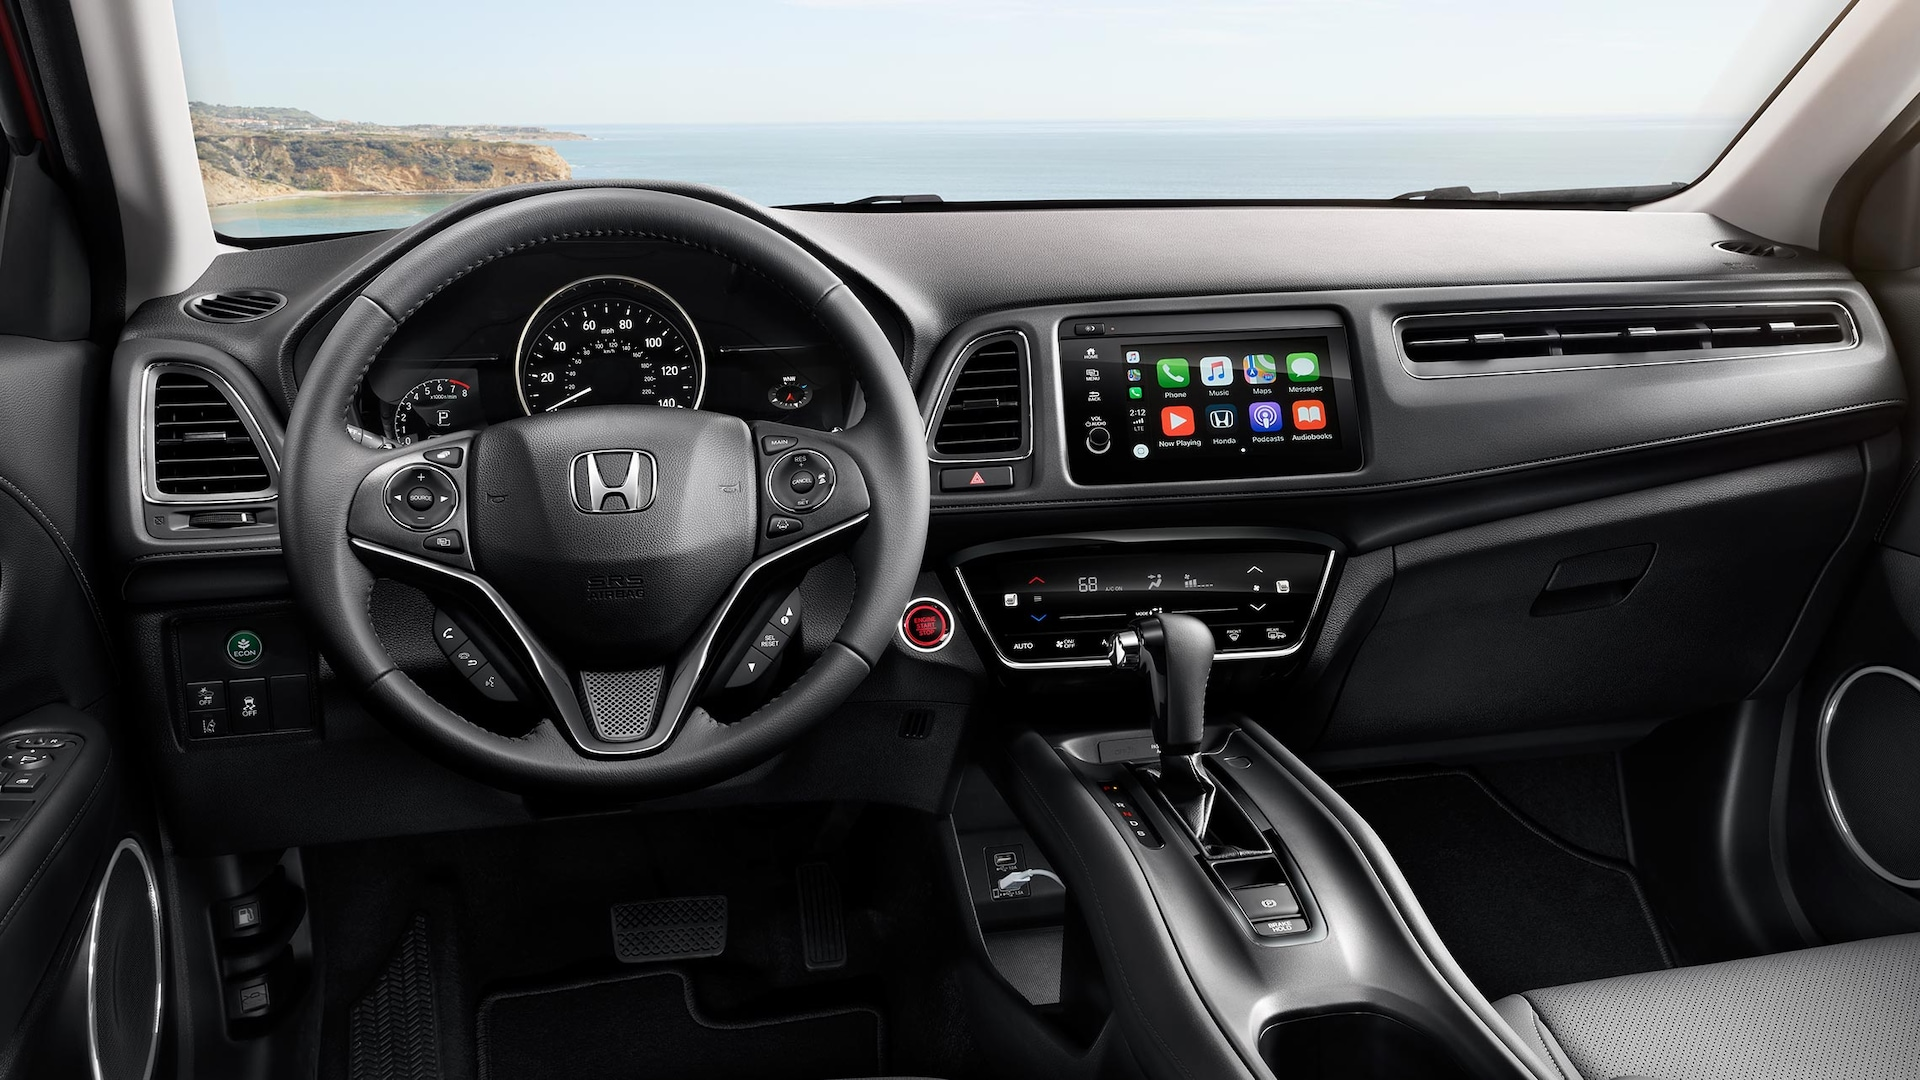 Interior cabin view of instrument panel in the 2019 Honda HR-V Touring in Black Leather.